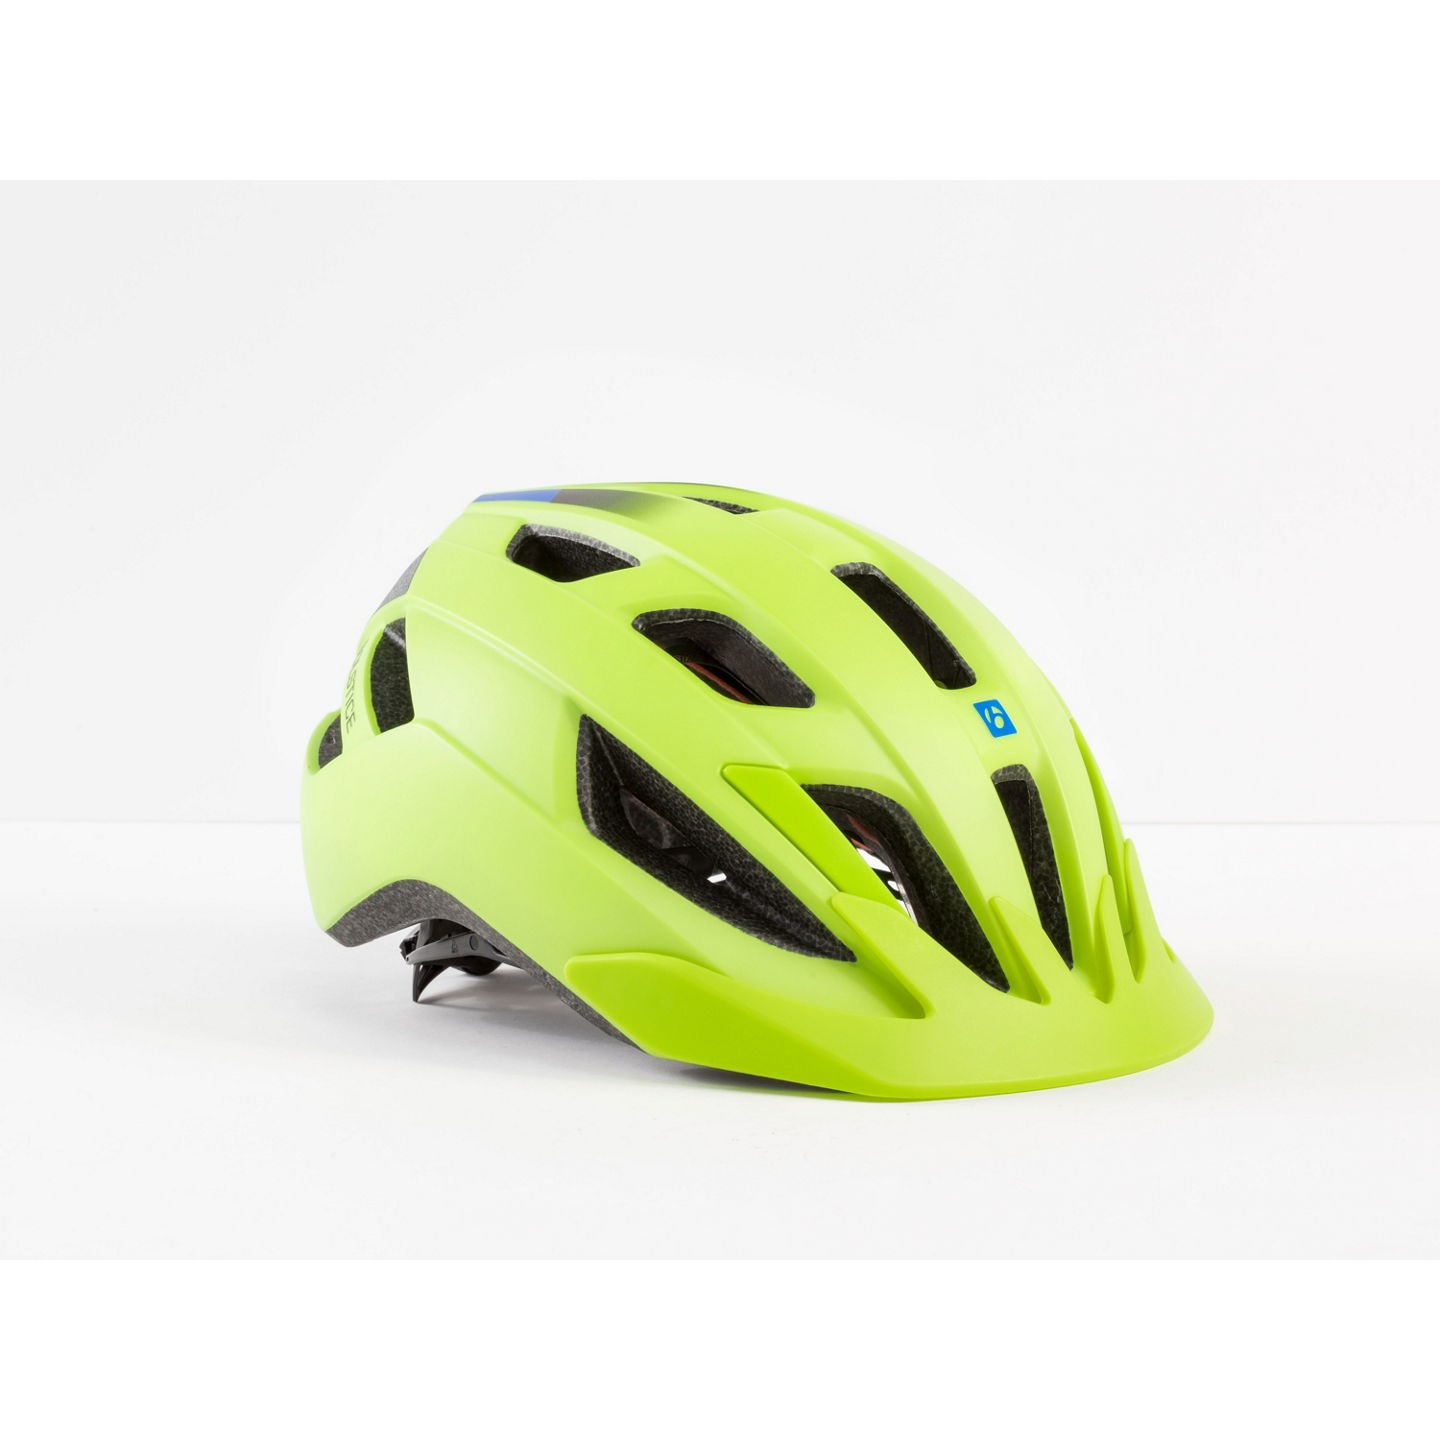 Bontrager Κράνος Solstice Youth MIPS